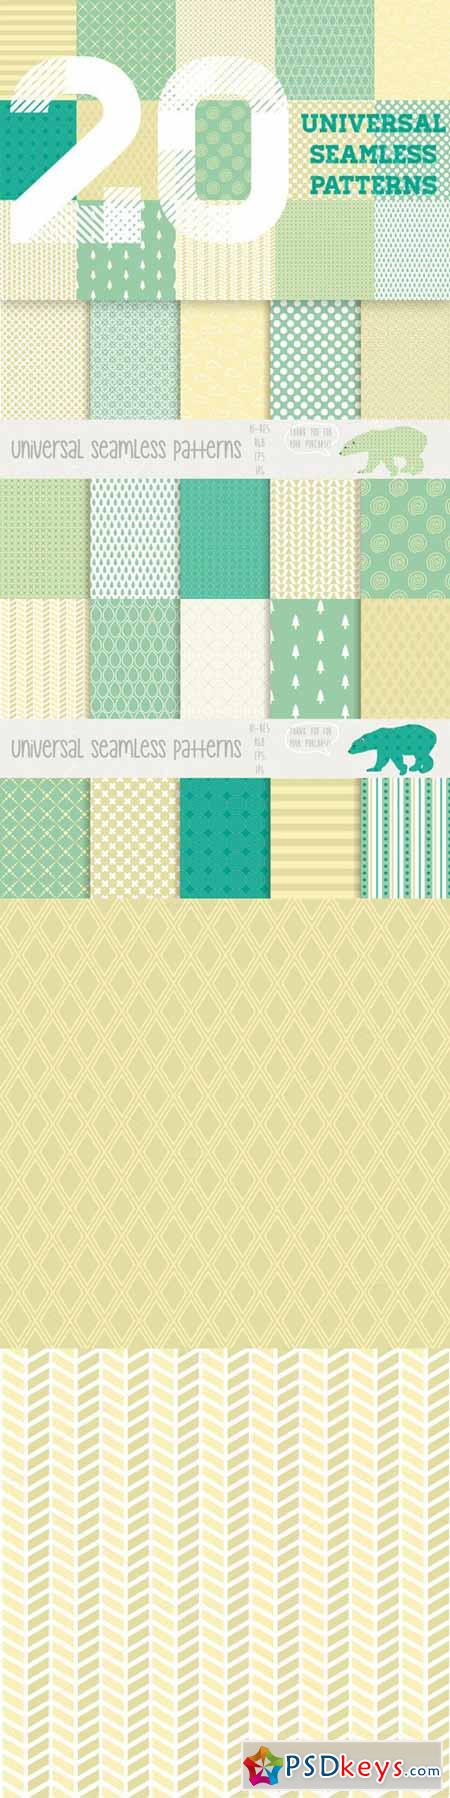 Universal seamless patterns 72966